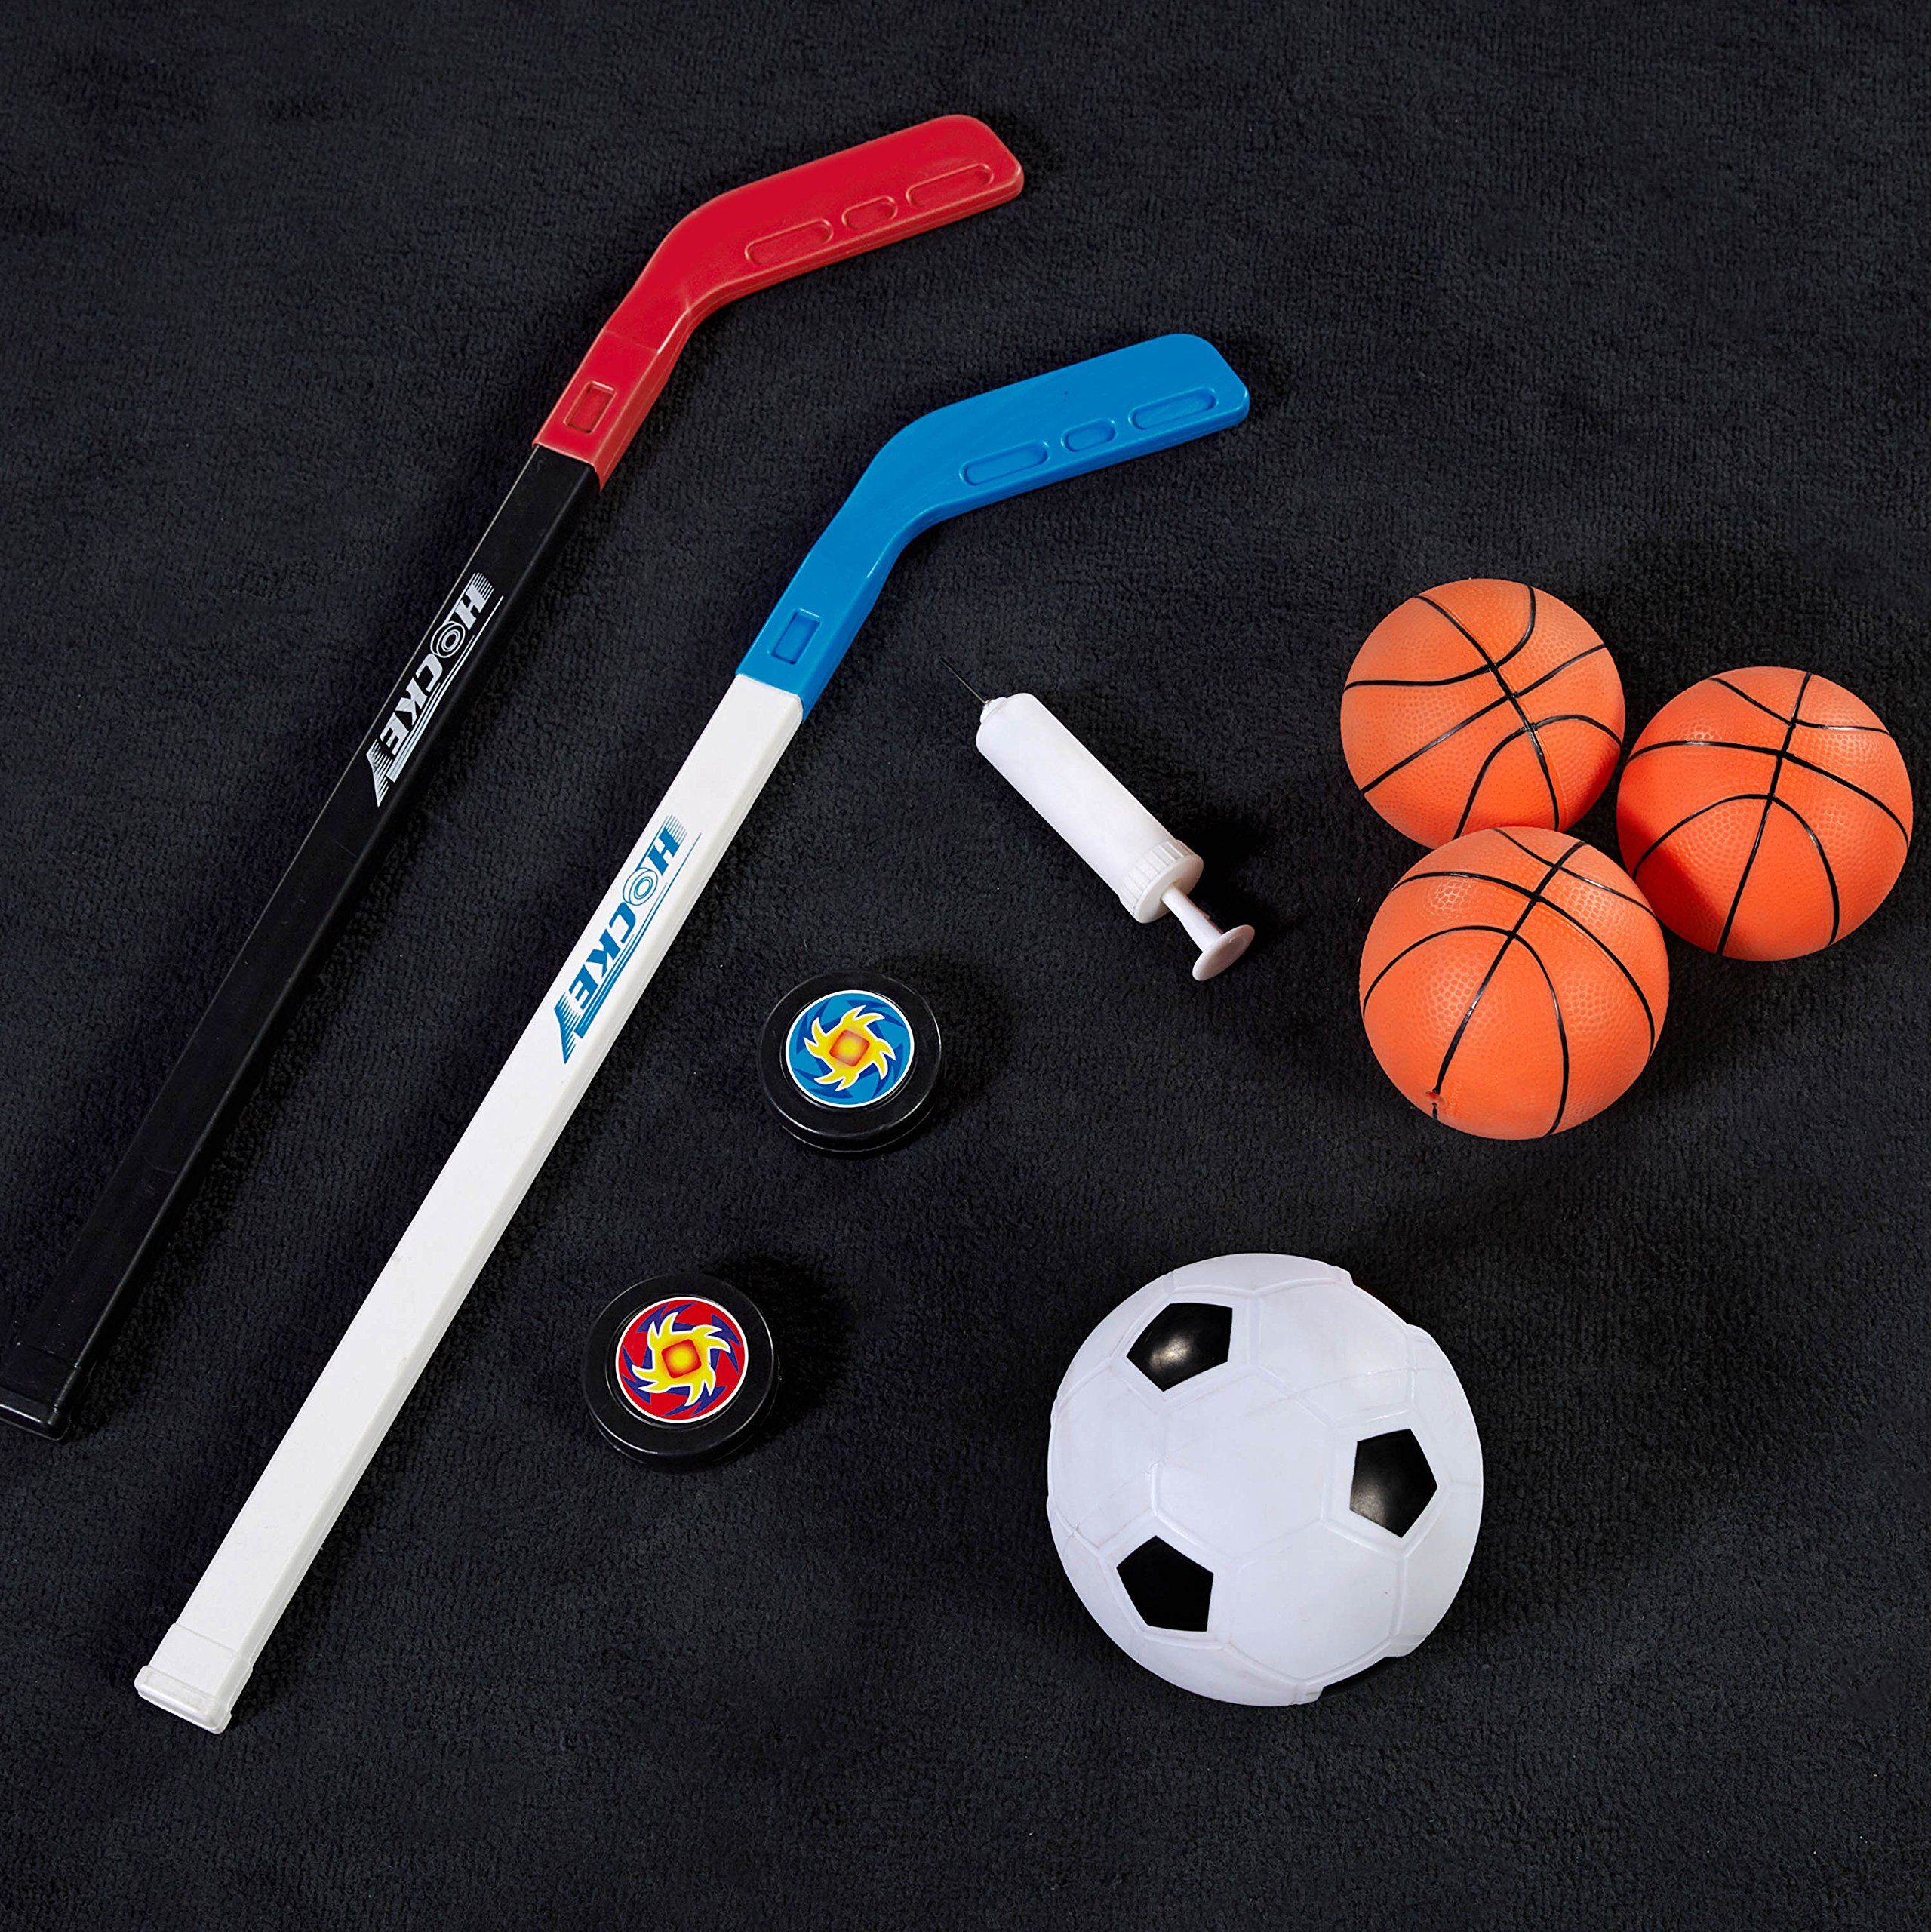 MD Sports BBG019_067M 4 in 1 Junior Basketball Game (Basketball, Soccer, Boxing & KNEE Hockey), Blue by MD Sports (Image #11)